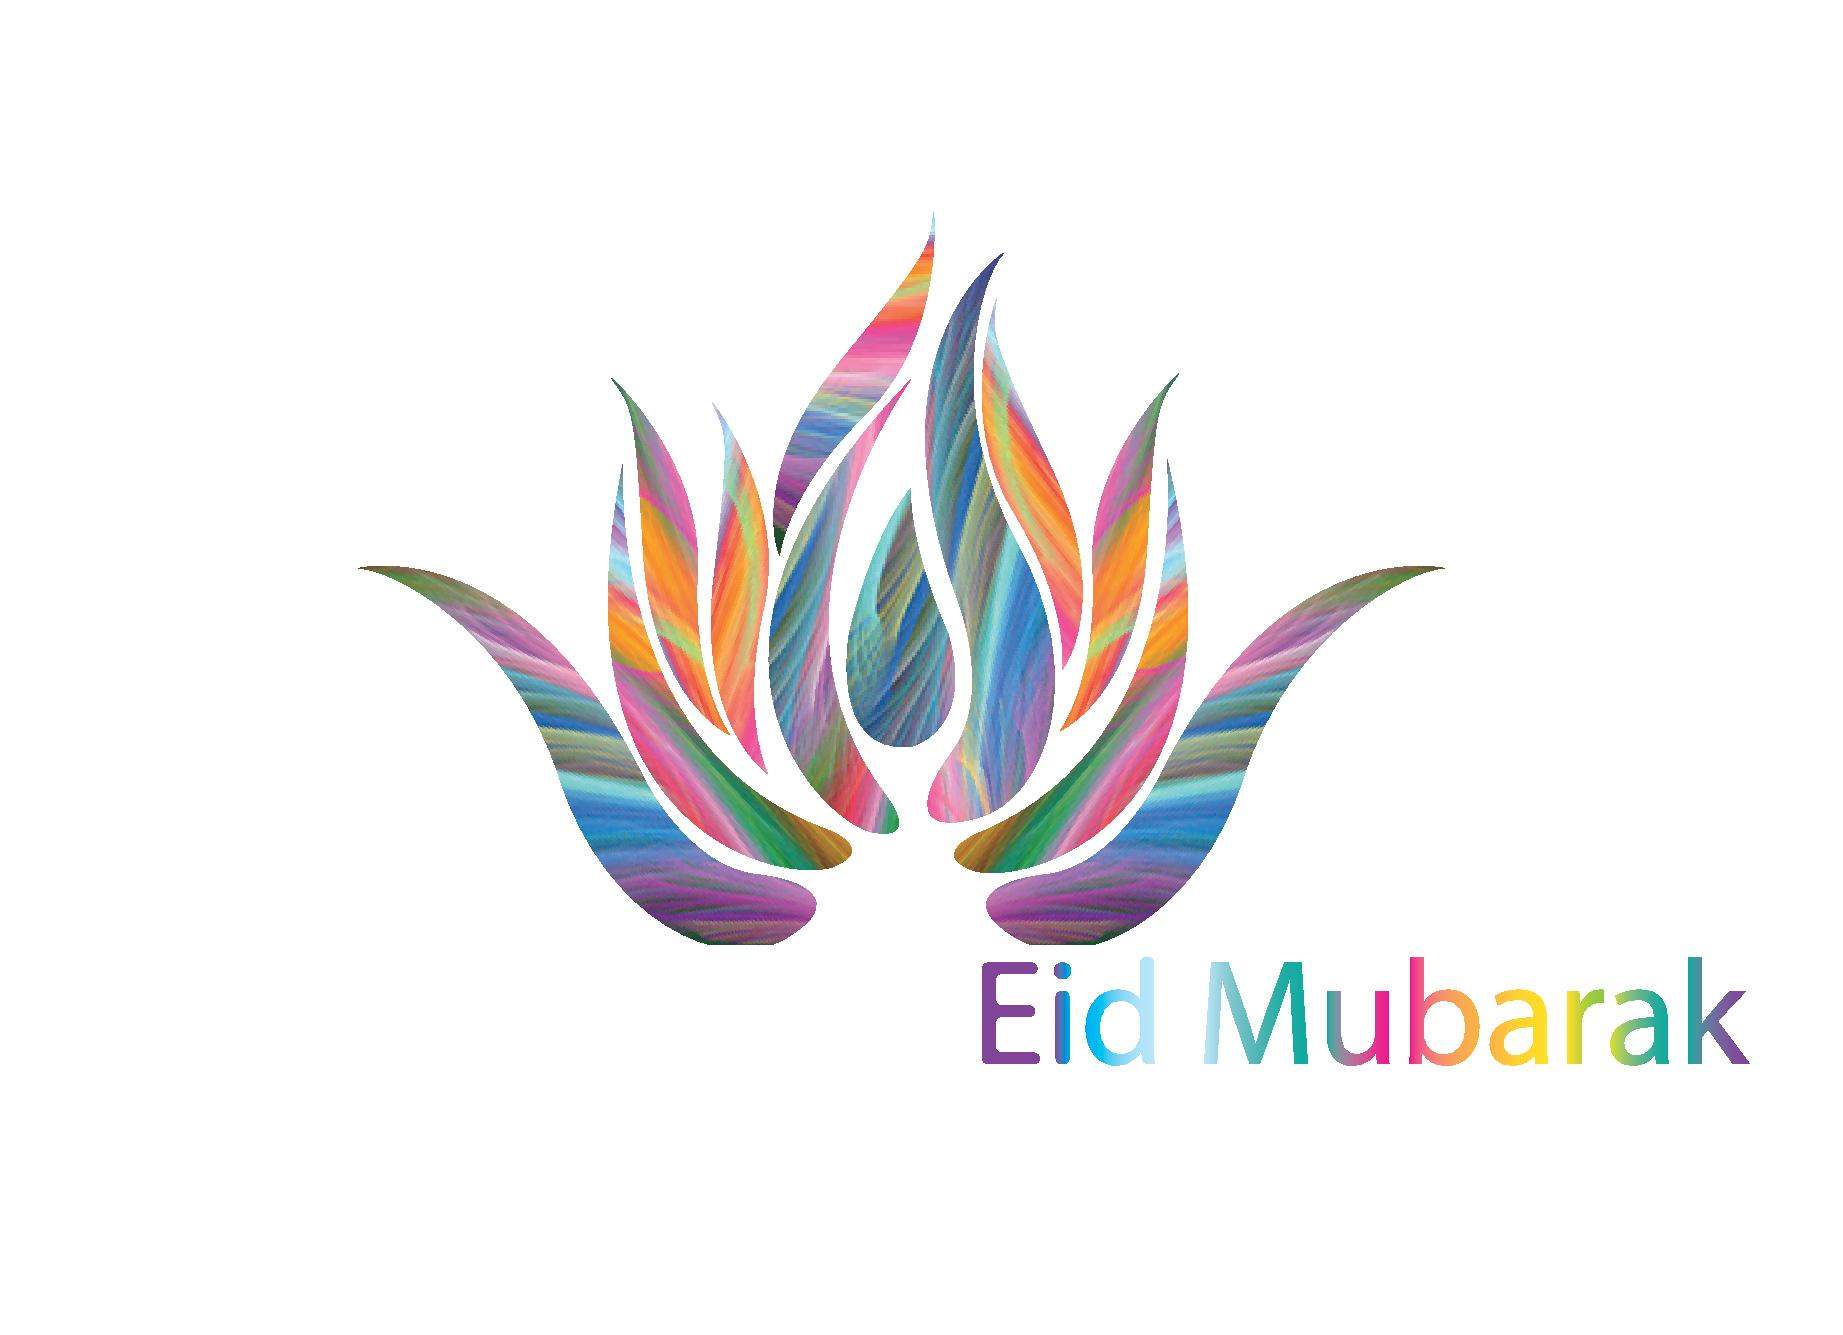 Download eid mubarak 2015 greeting cards and messages page 7 eid mubarak 2015 greeting cards designsmag 24 kristyandbryce Image collections